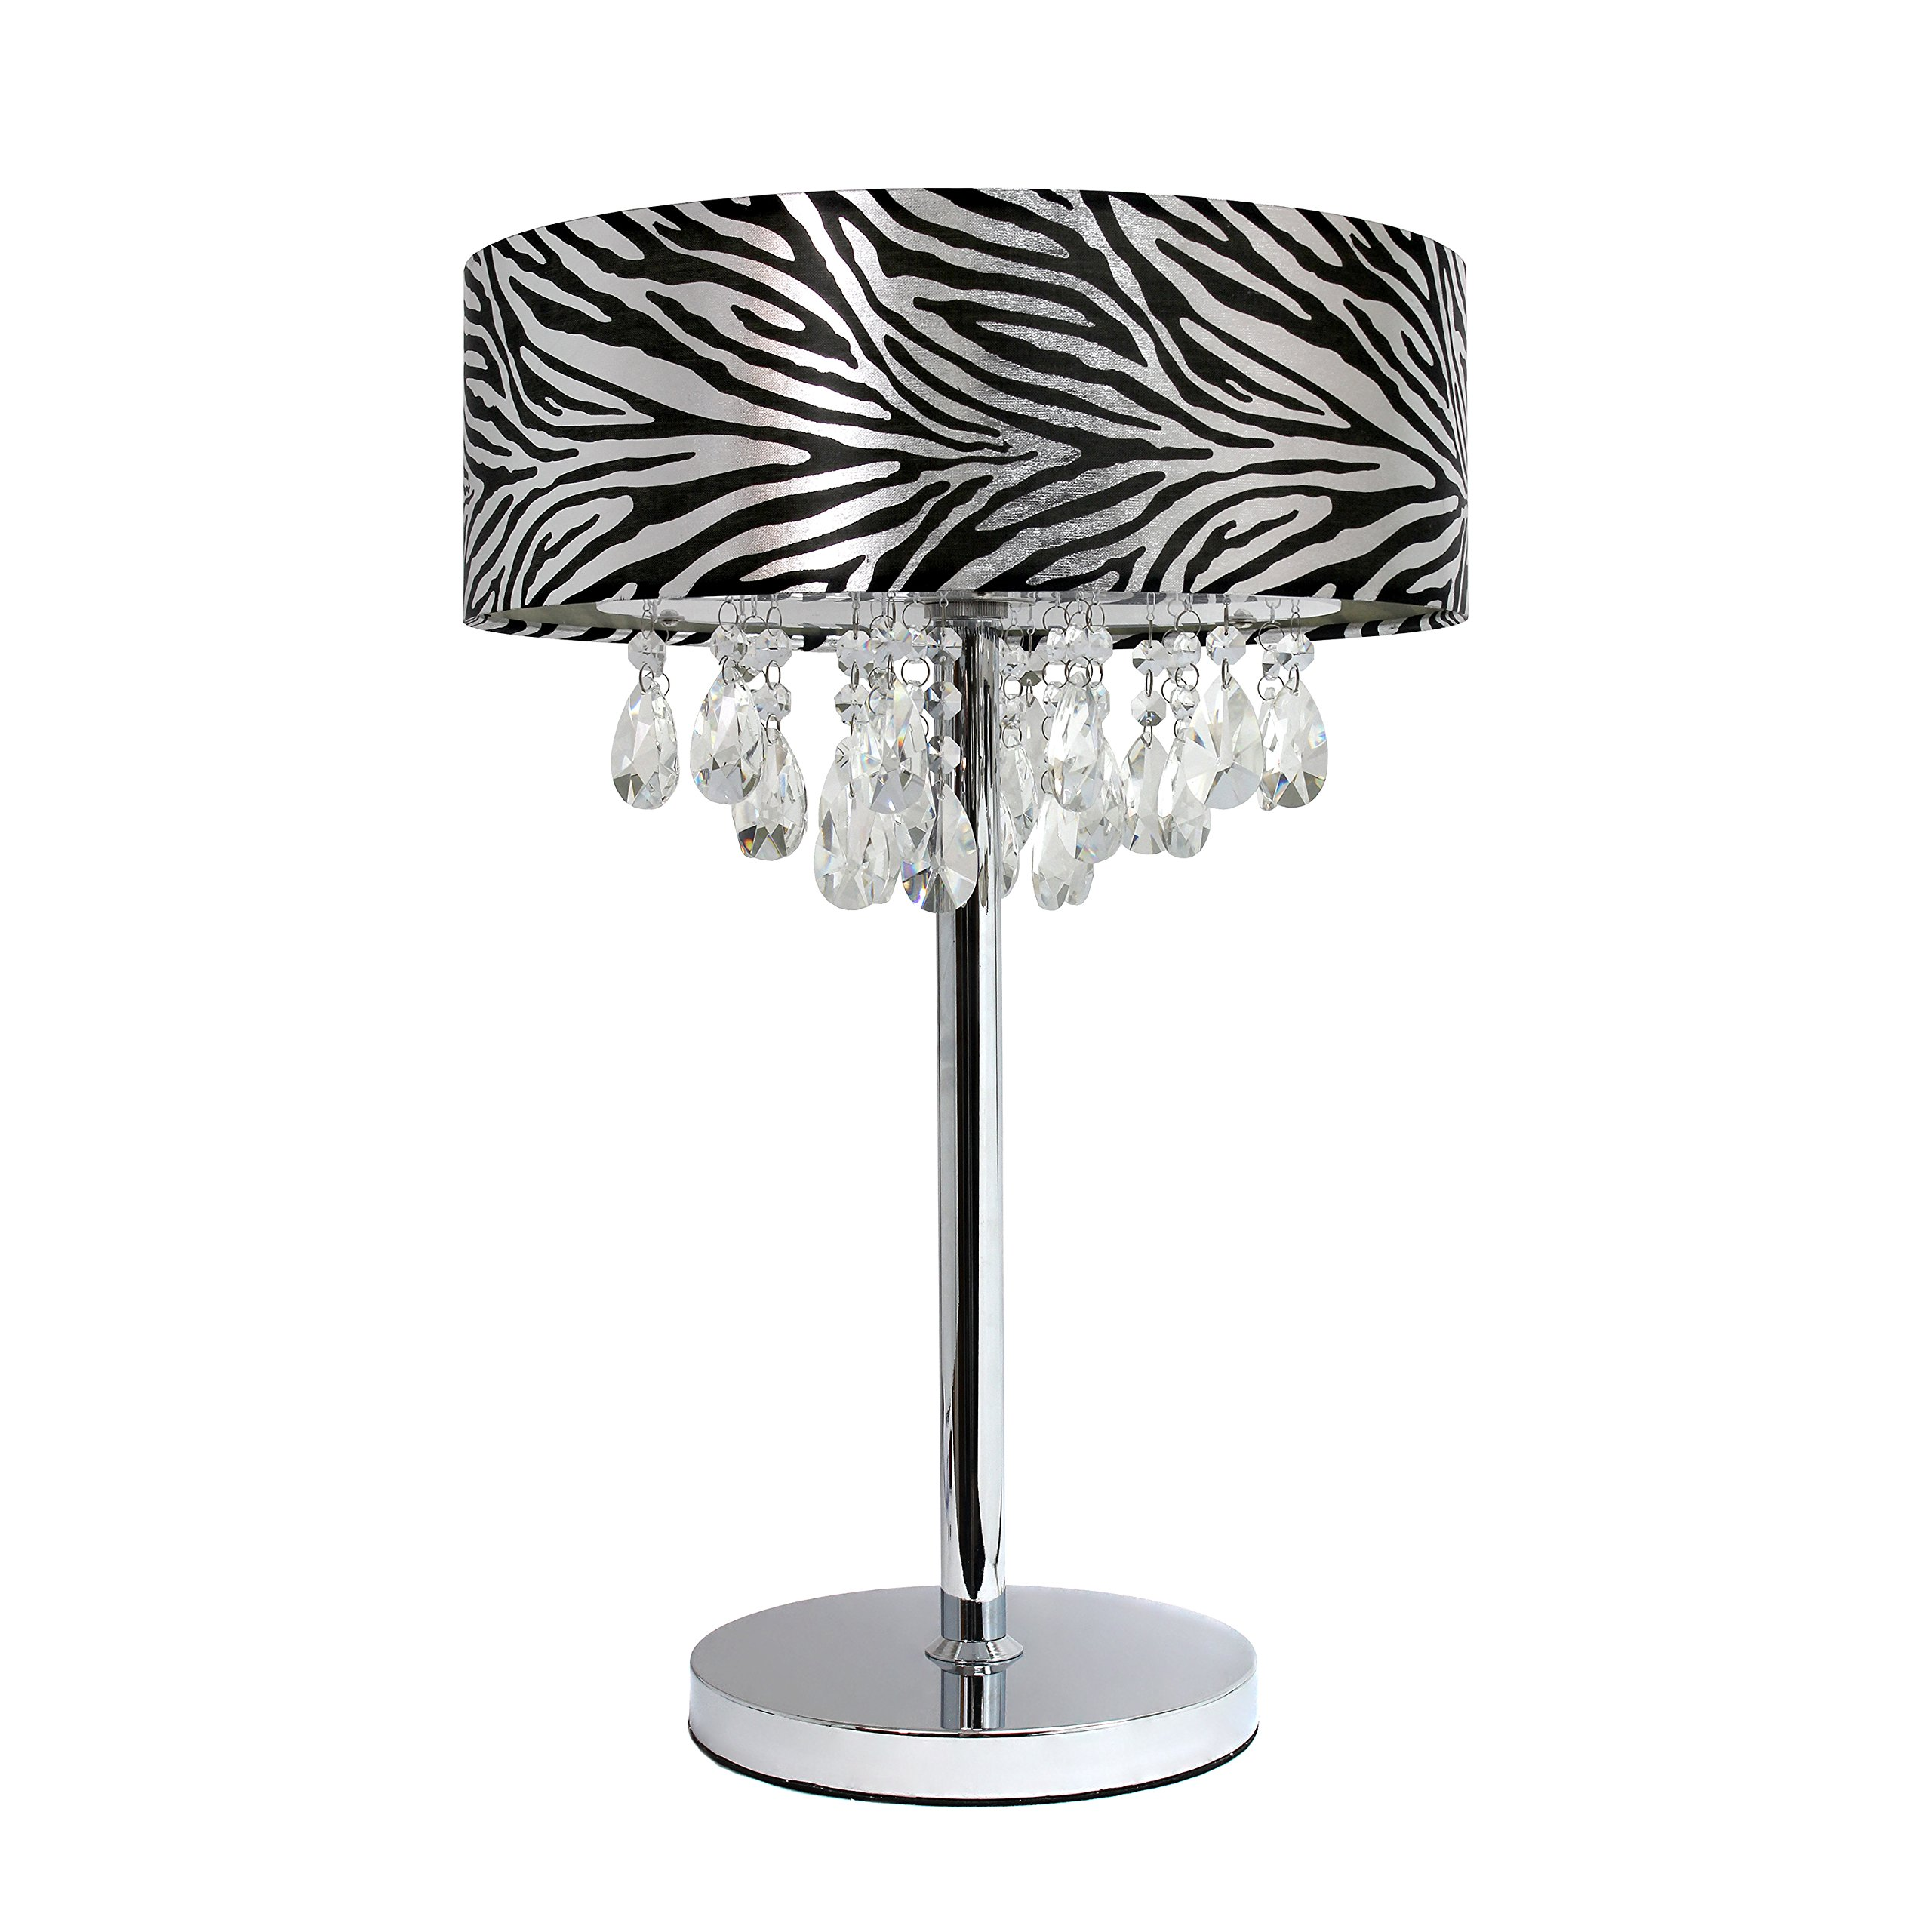 Elegant Designs LT1023-BLK Romazzino Crystal and Chrome Table Lamp with Ruched Fabric Drum Shade, Zebra Print by Elegant Designs